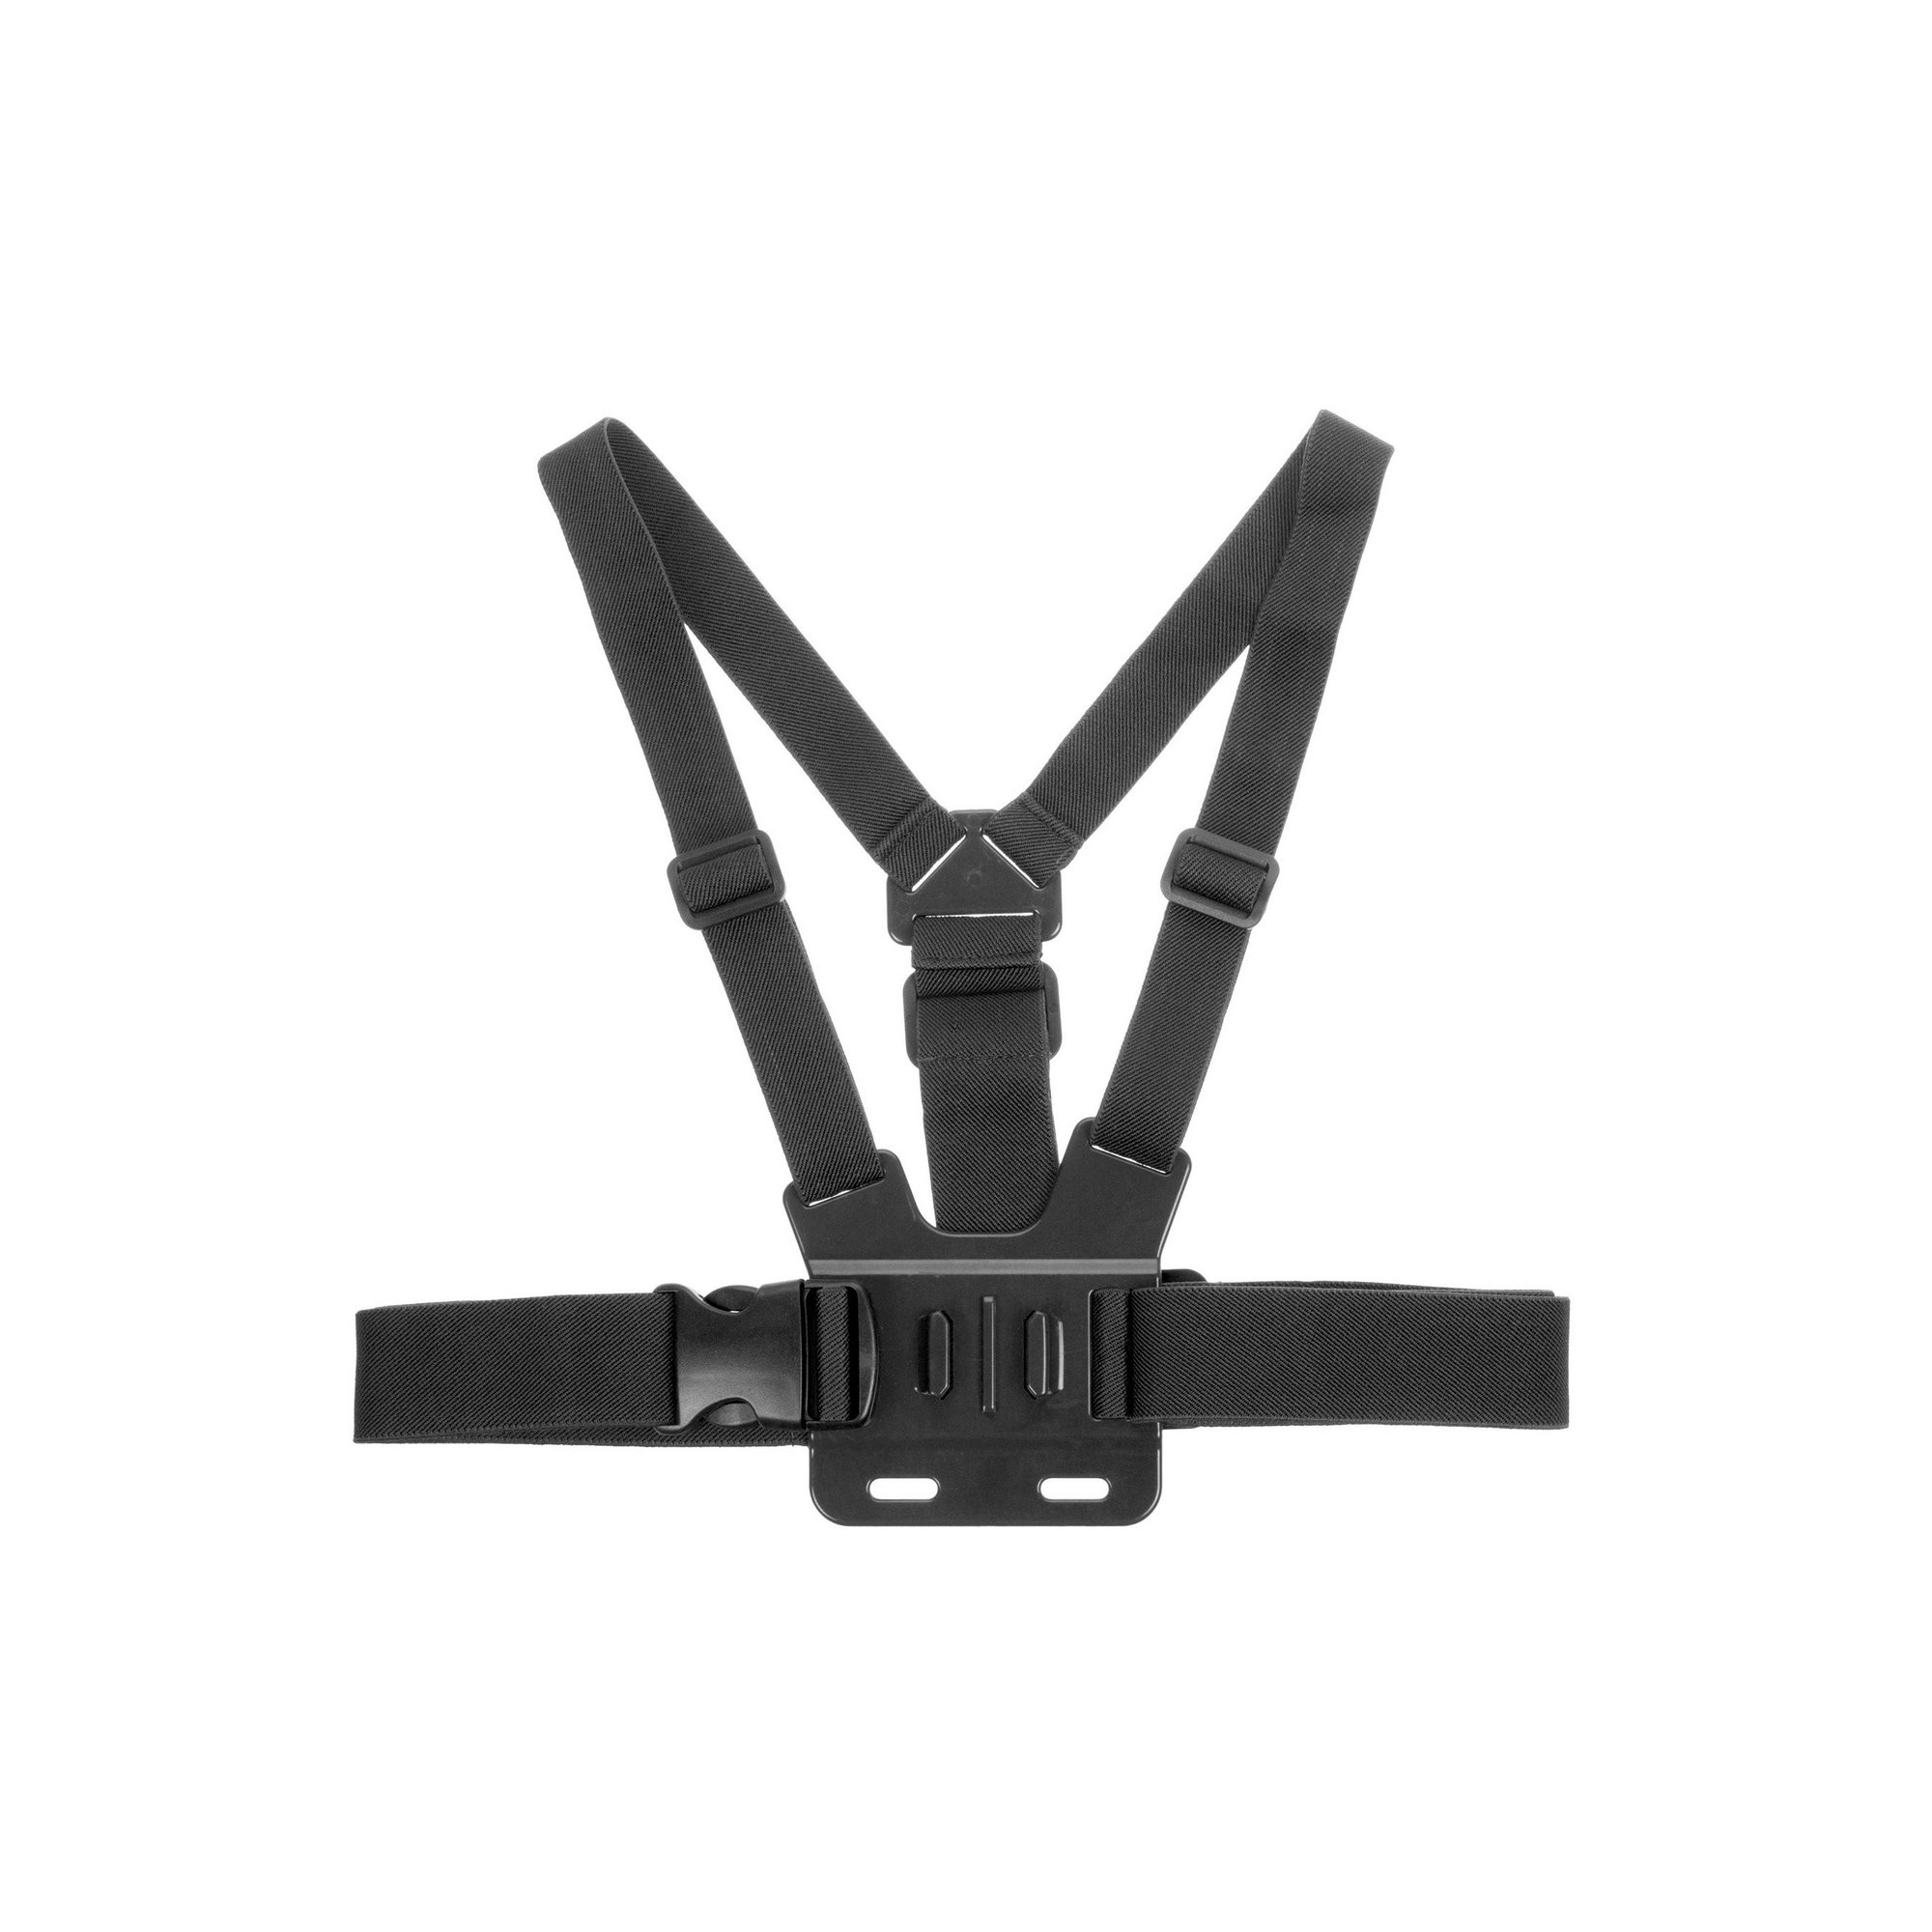 Image of KitVision Action Camera Chest Mount